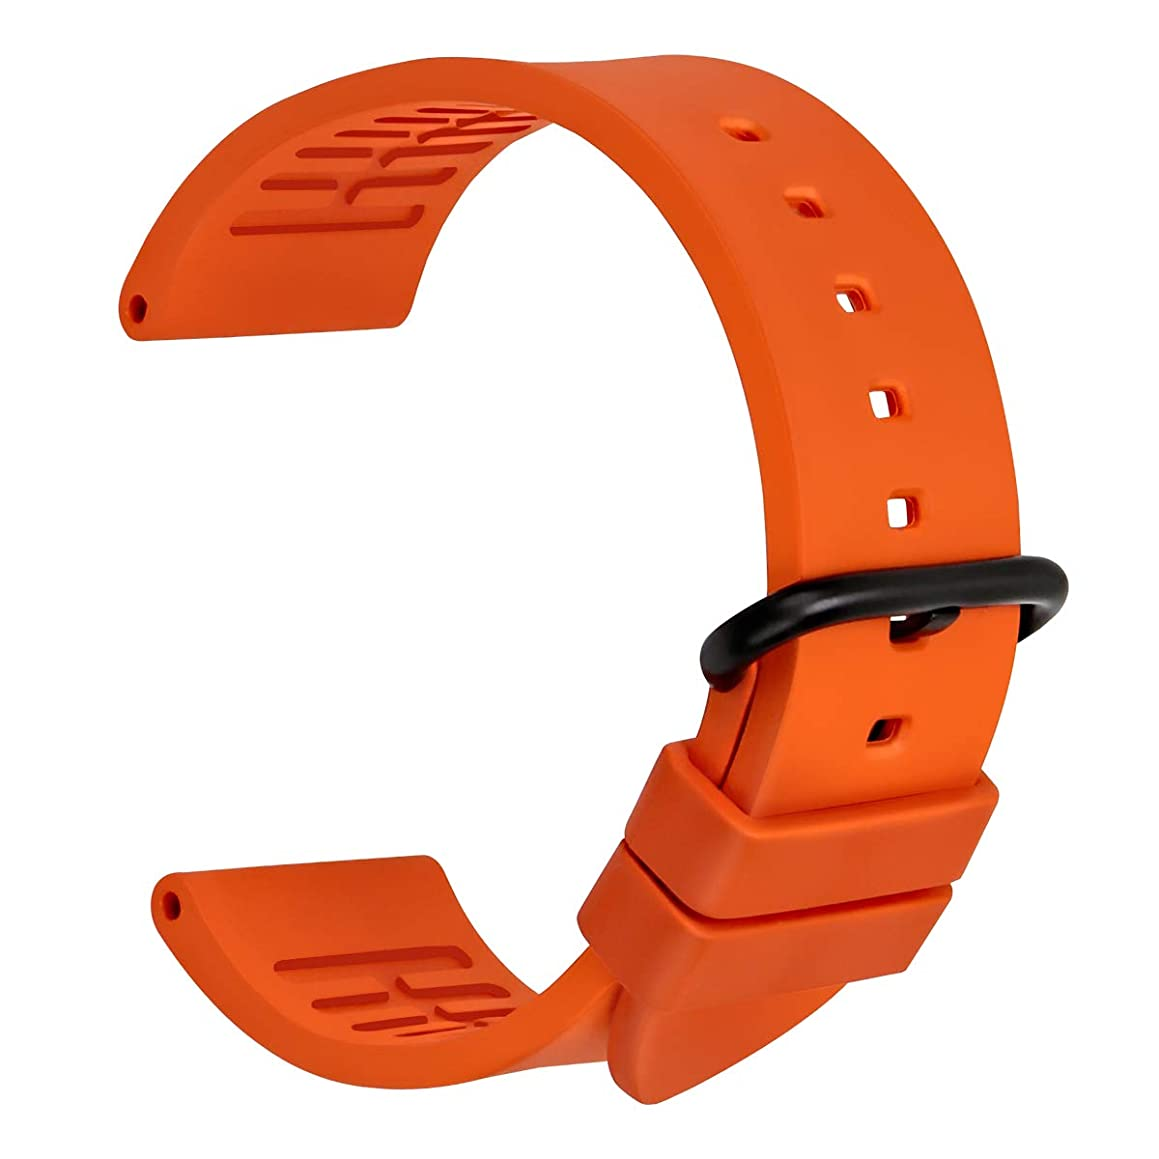 MAIKES Waterproof Watch Band, Fluoro Rubber Watch Strap 20mm 22mm 24mm Replacement Watchband with Stainless Steel Buckle, Tools for Men Women